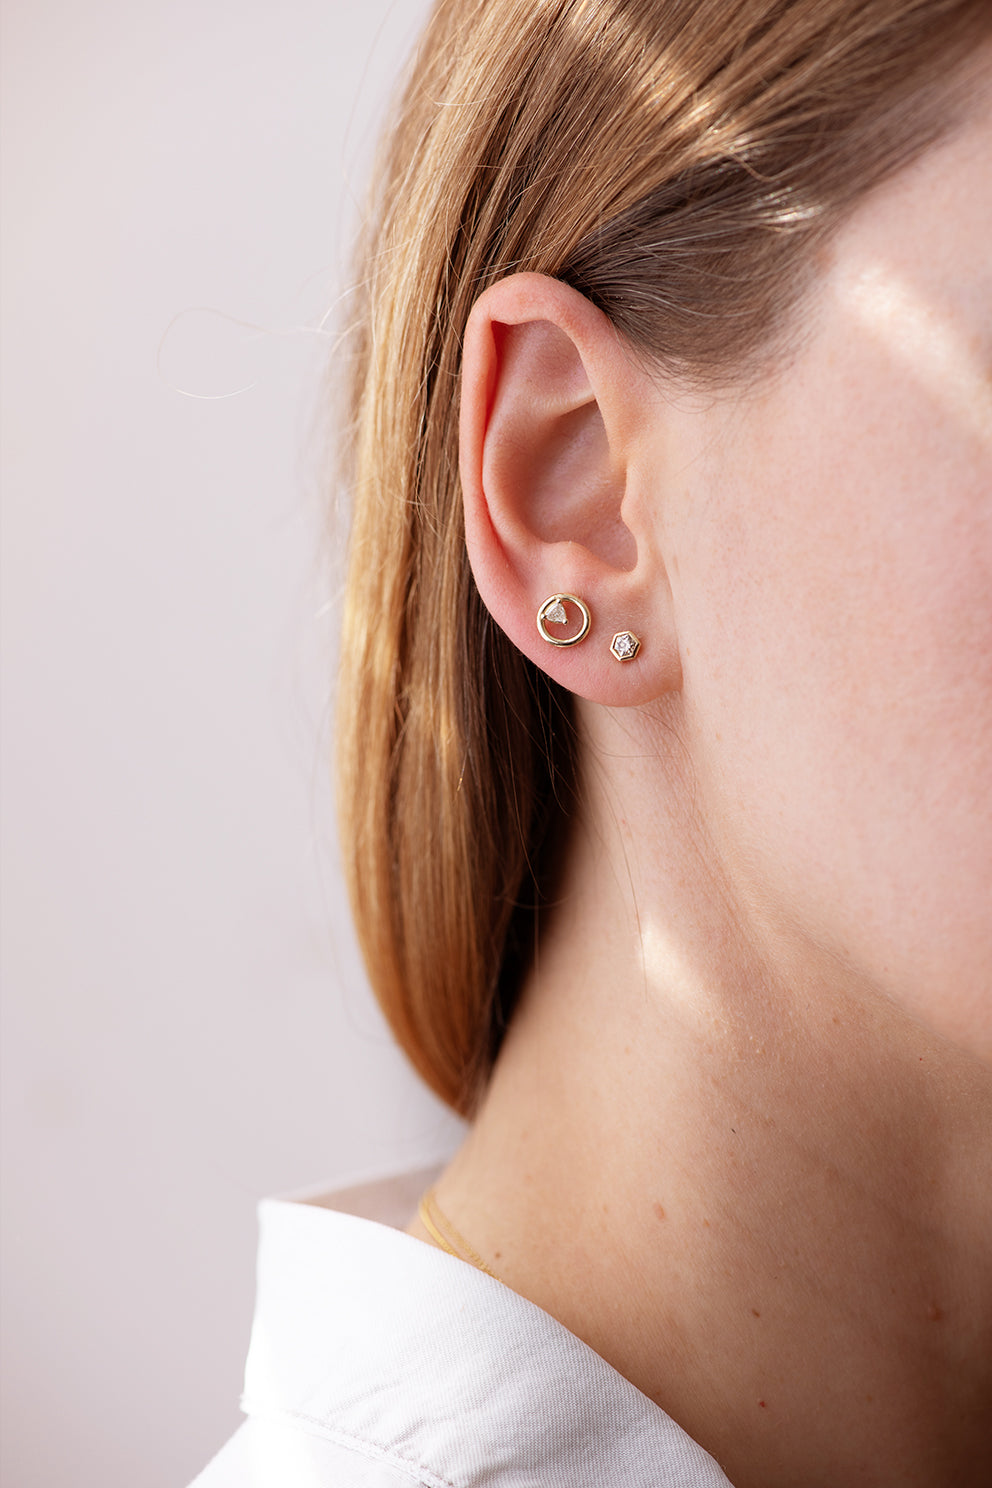 Hexagon Diamond Earrings on Ear in Set Second View